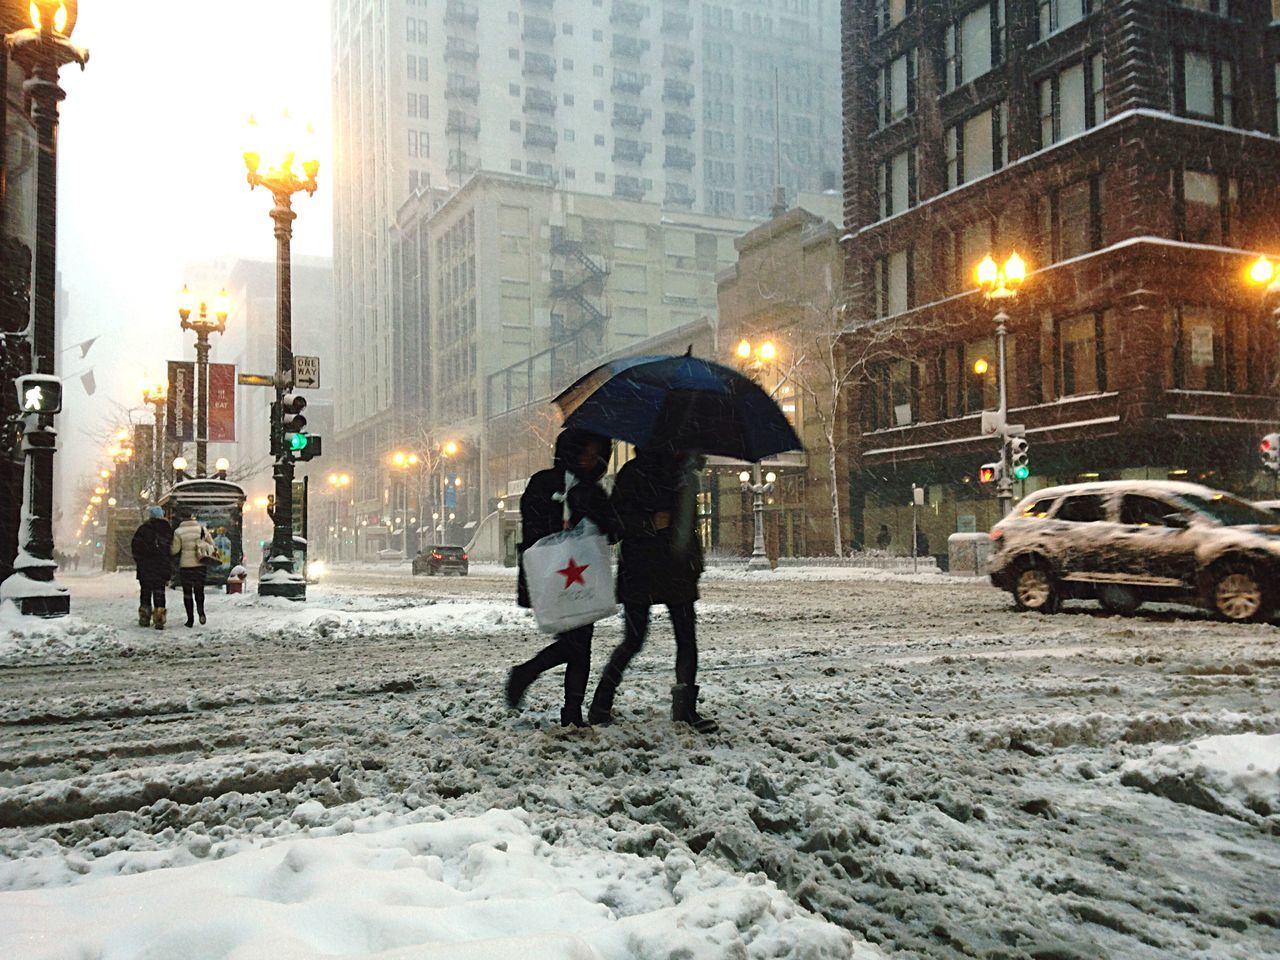 People crossing snow covered city street